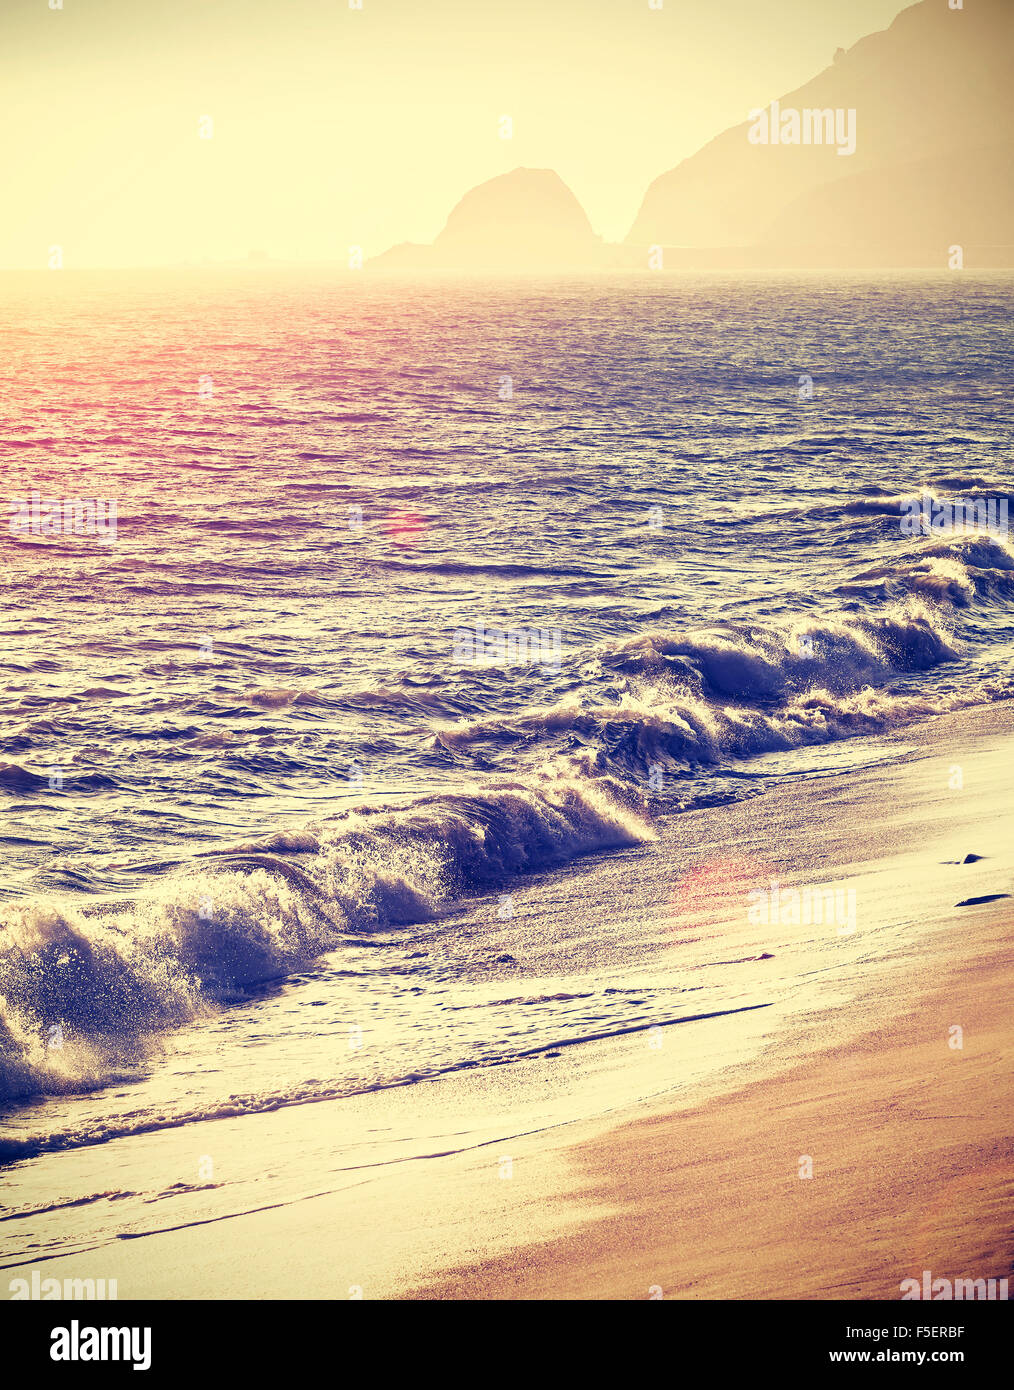 Vintage filtered beach at sunset with flare effect, California, USA. - Stock Image